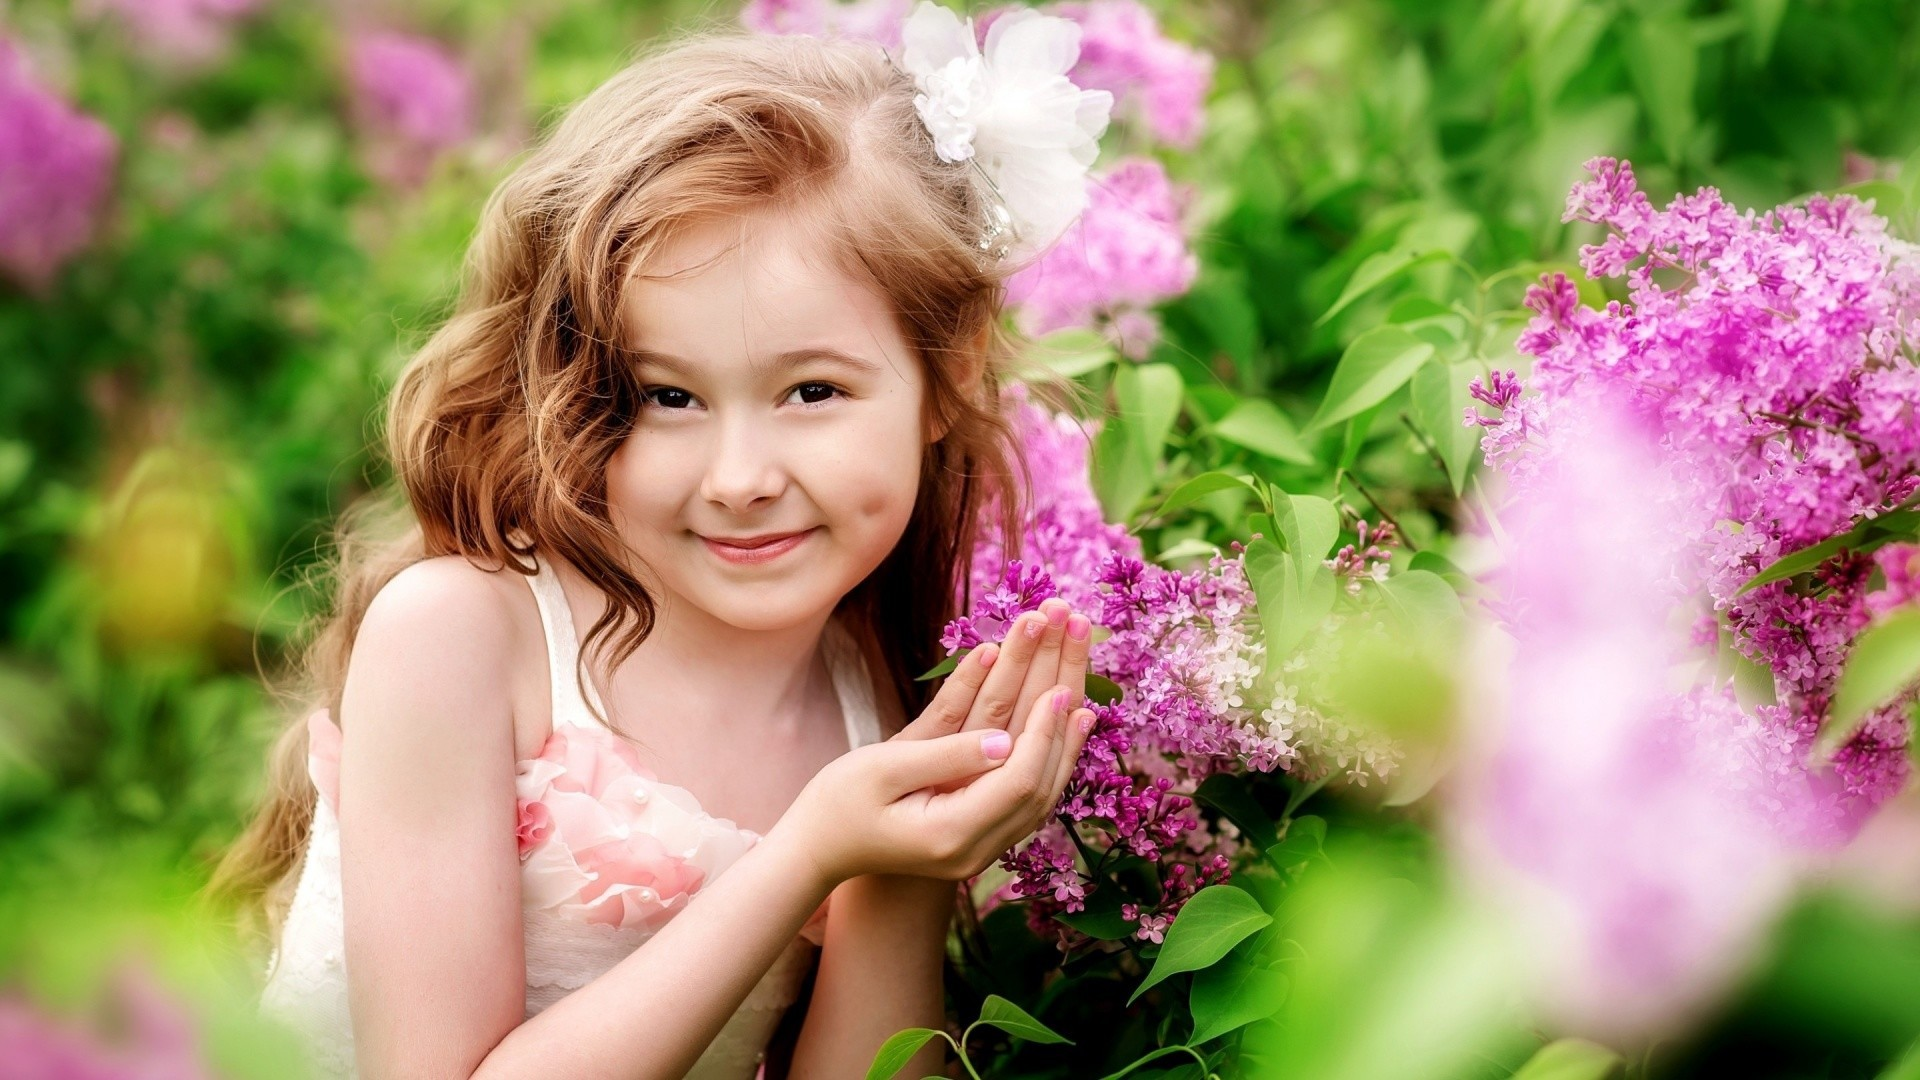 1920x1080  Cute Baby Girls Wallpapers HD Pictures One HD Wallpaper Pictures  ... - HD Wallpapers